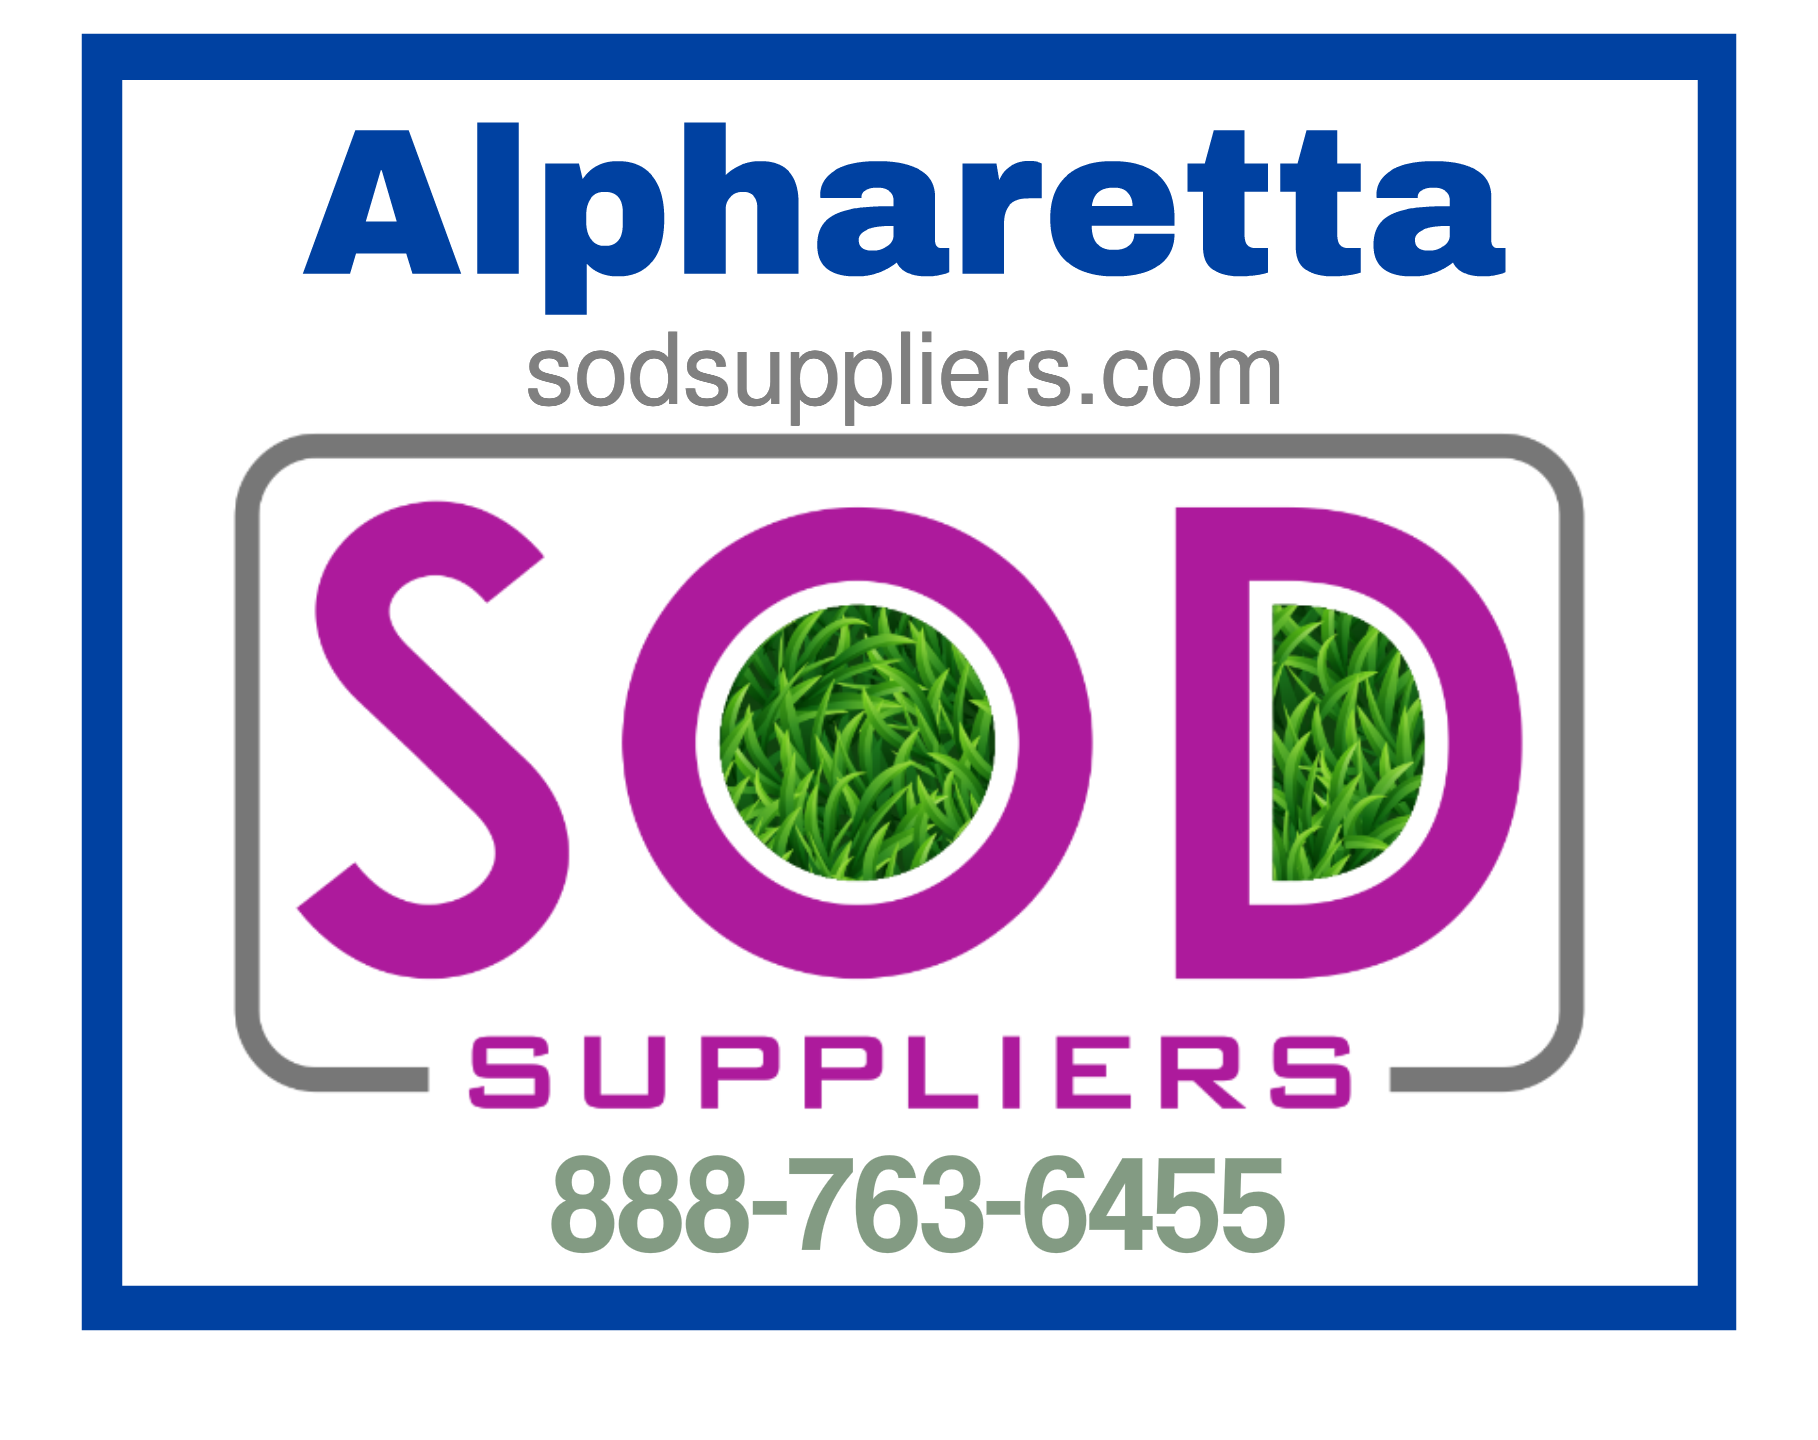 alpharetta-sod-suppliers-near-me